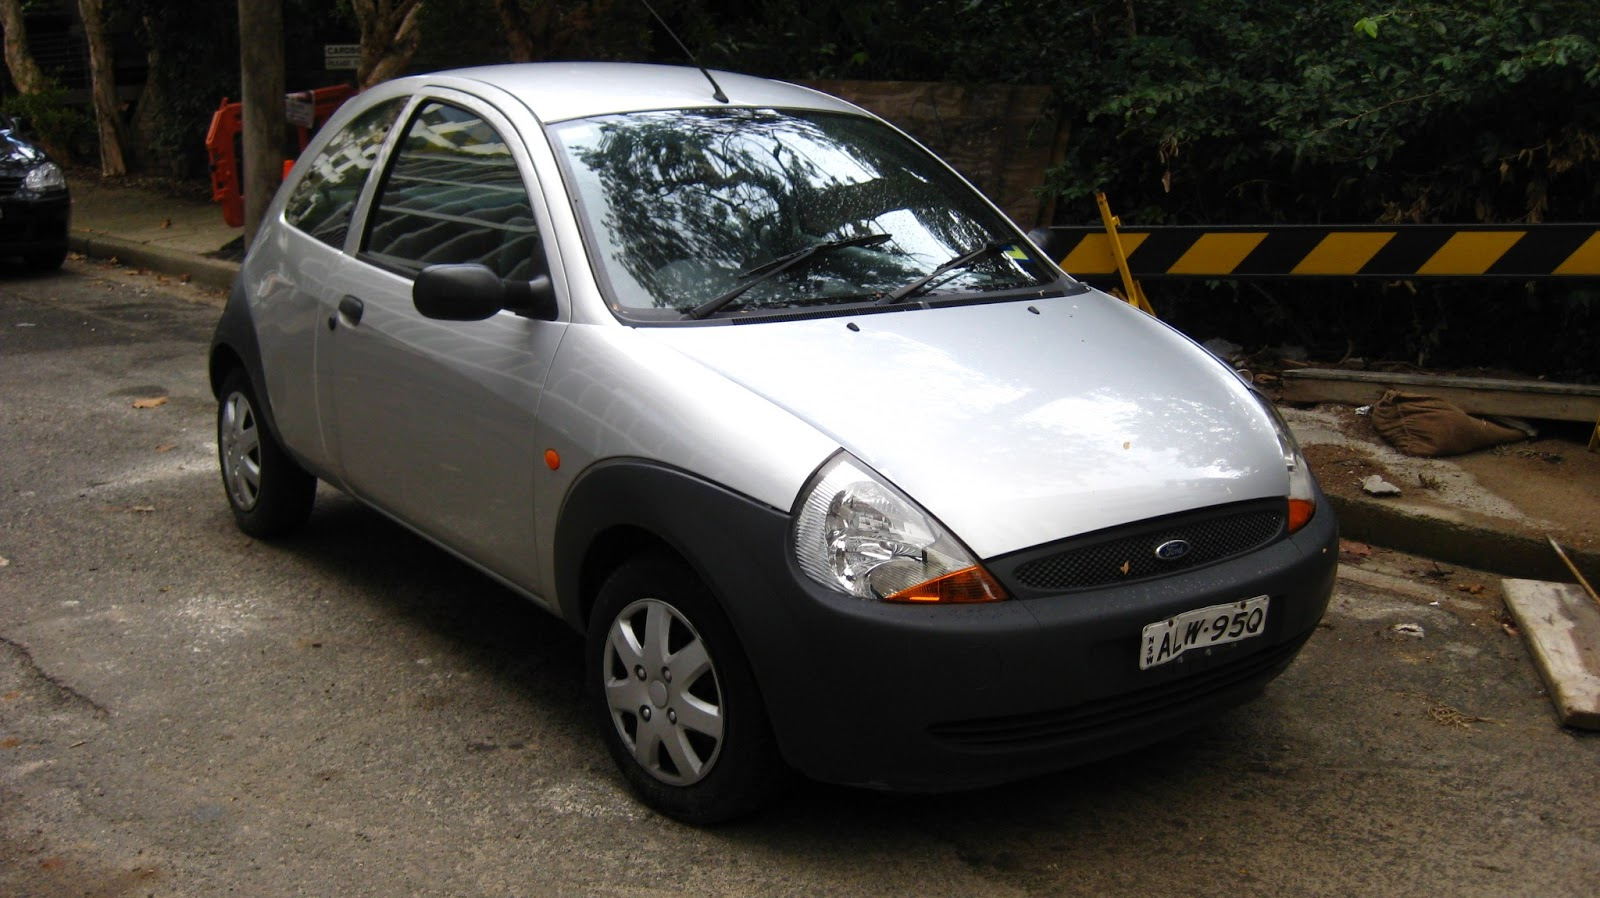 aussie old parked cars 2001 ford ka. Black Bedroom Furniture Sets. Home Design Ideas